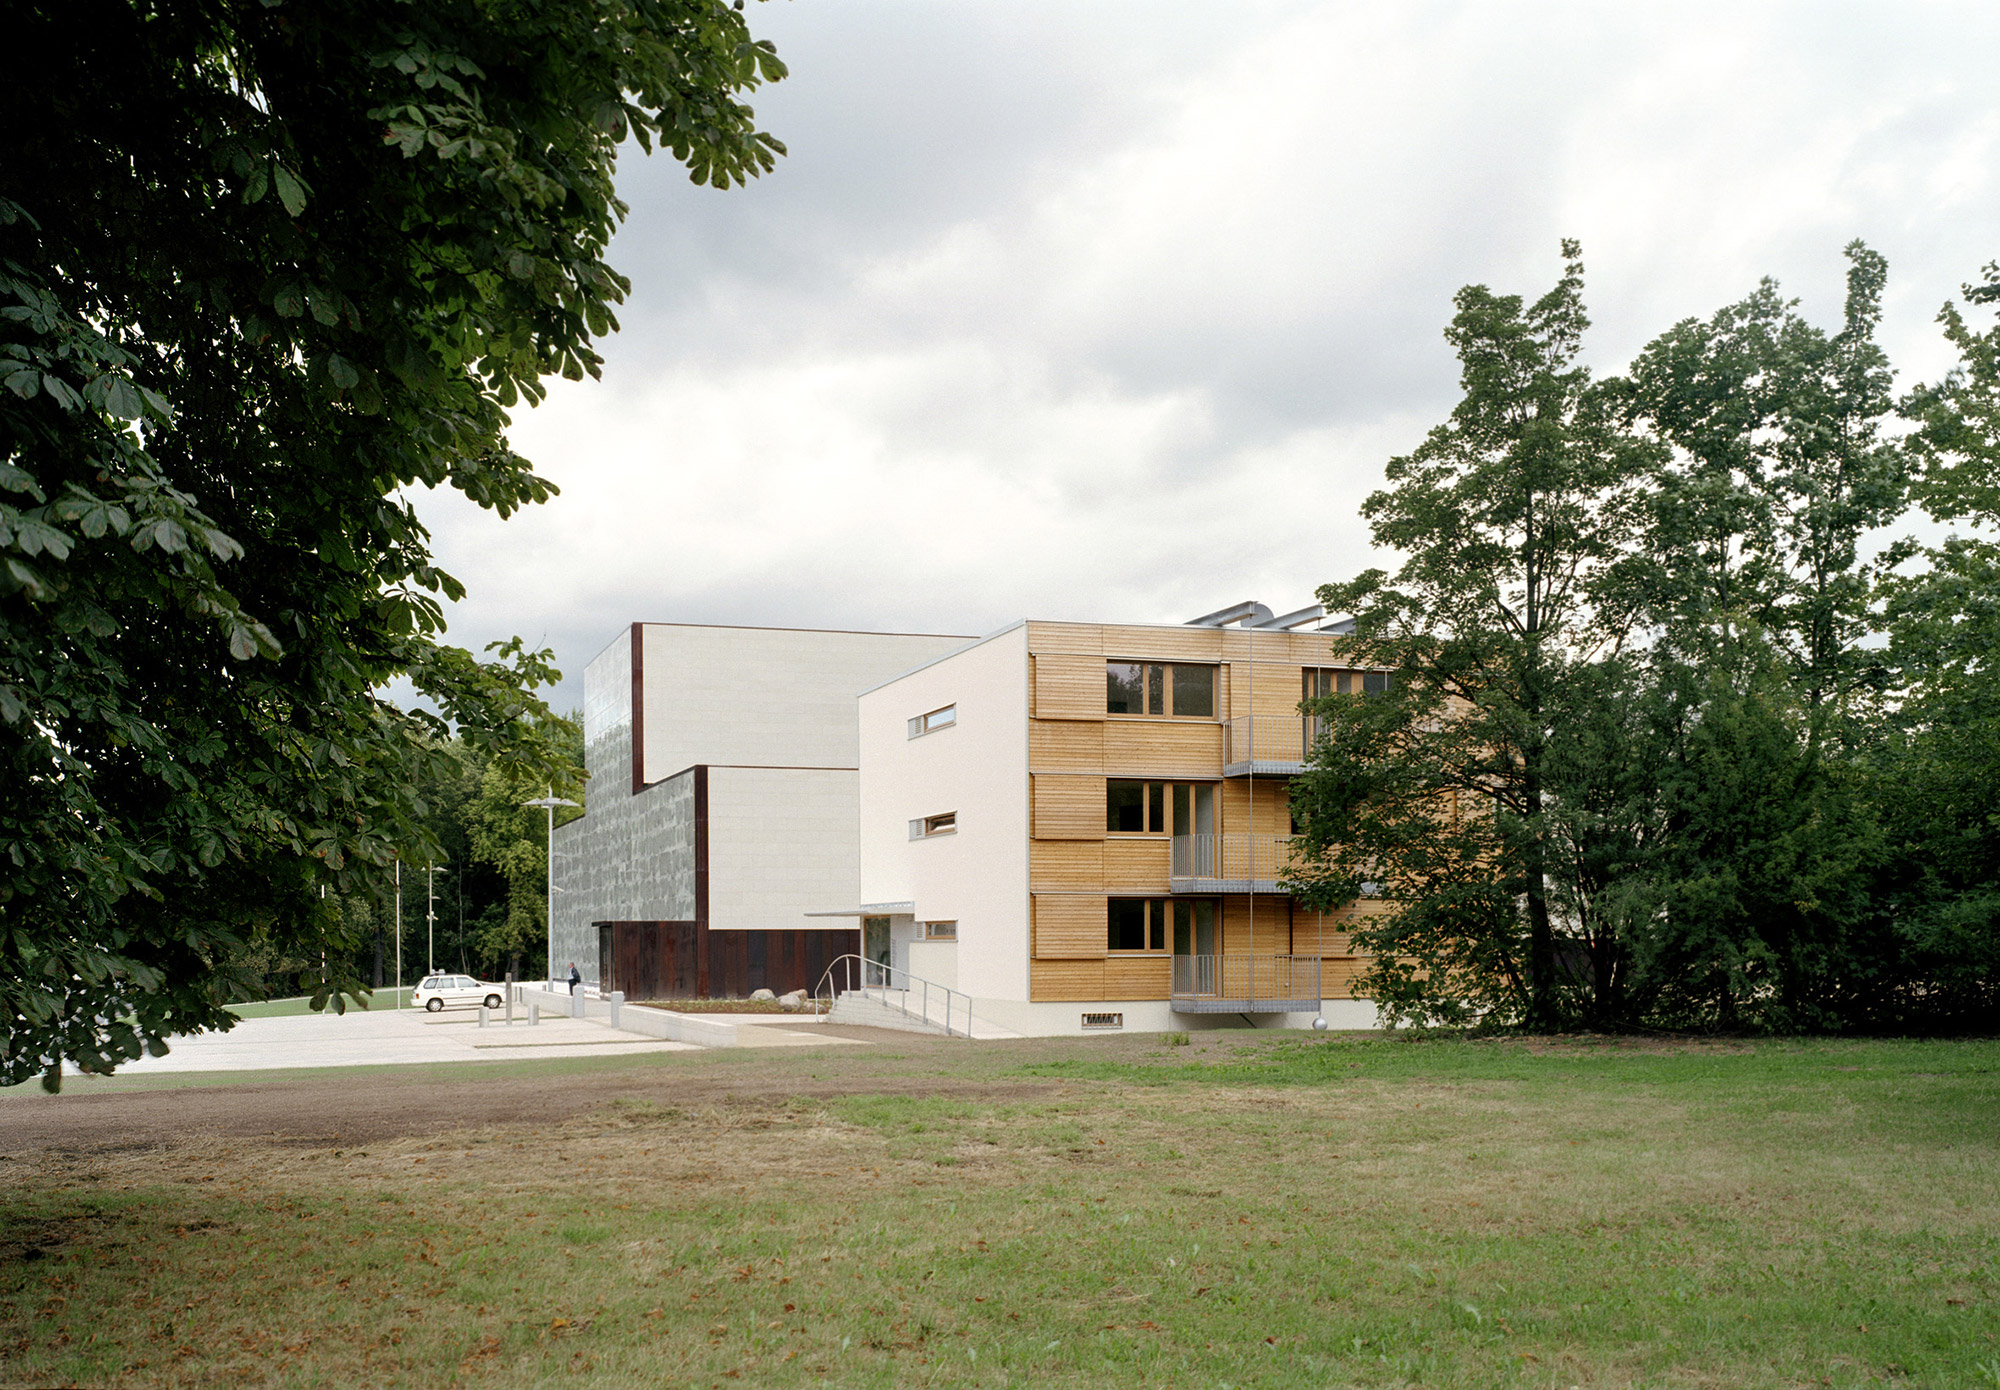 Housing in Chemnitz. (Unpublished)